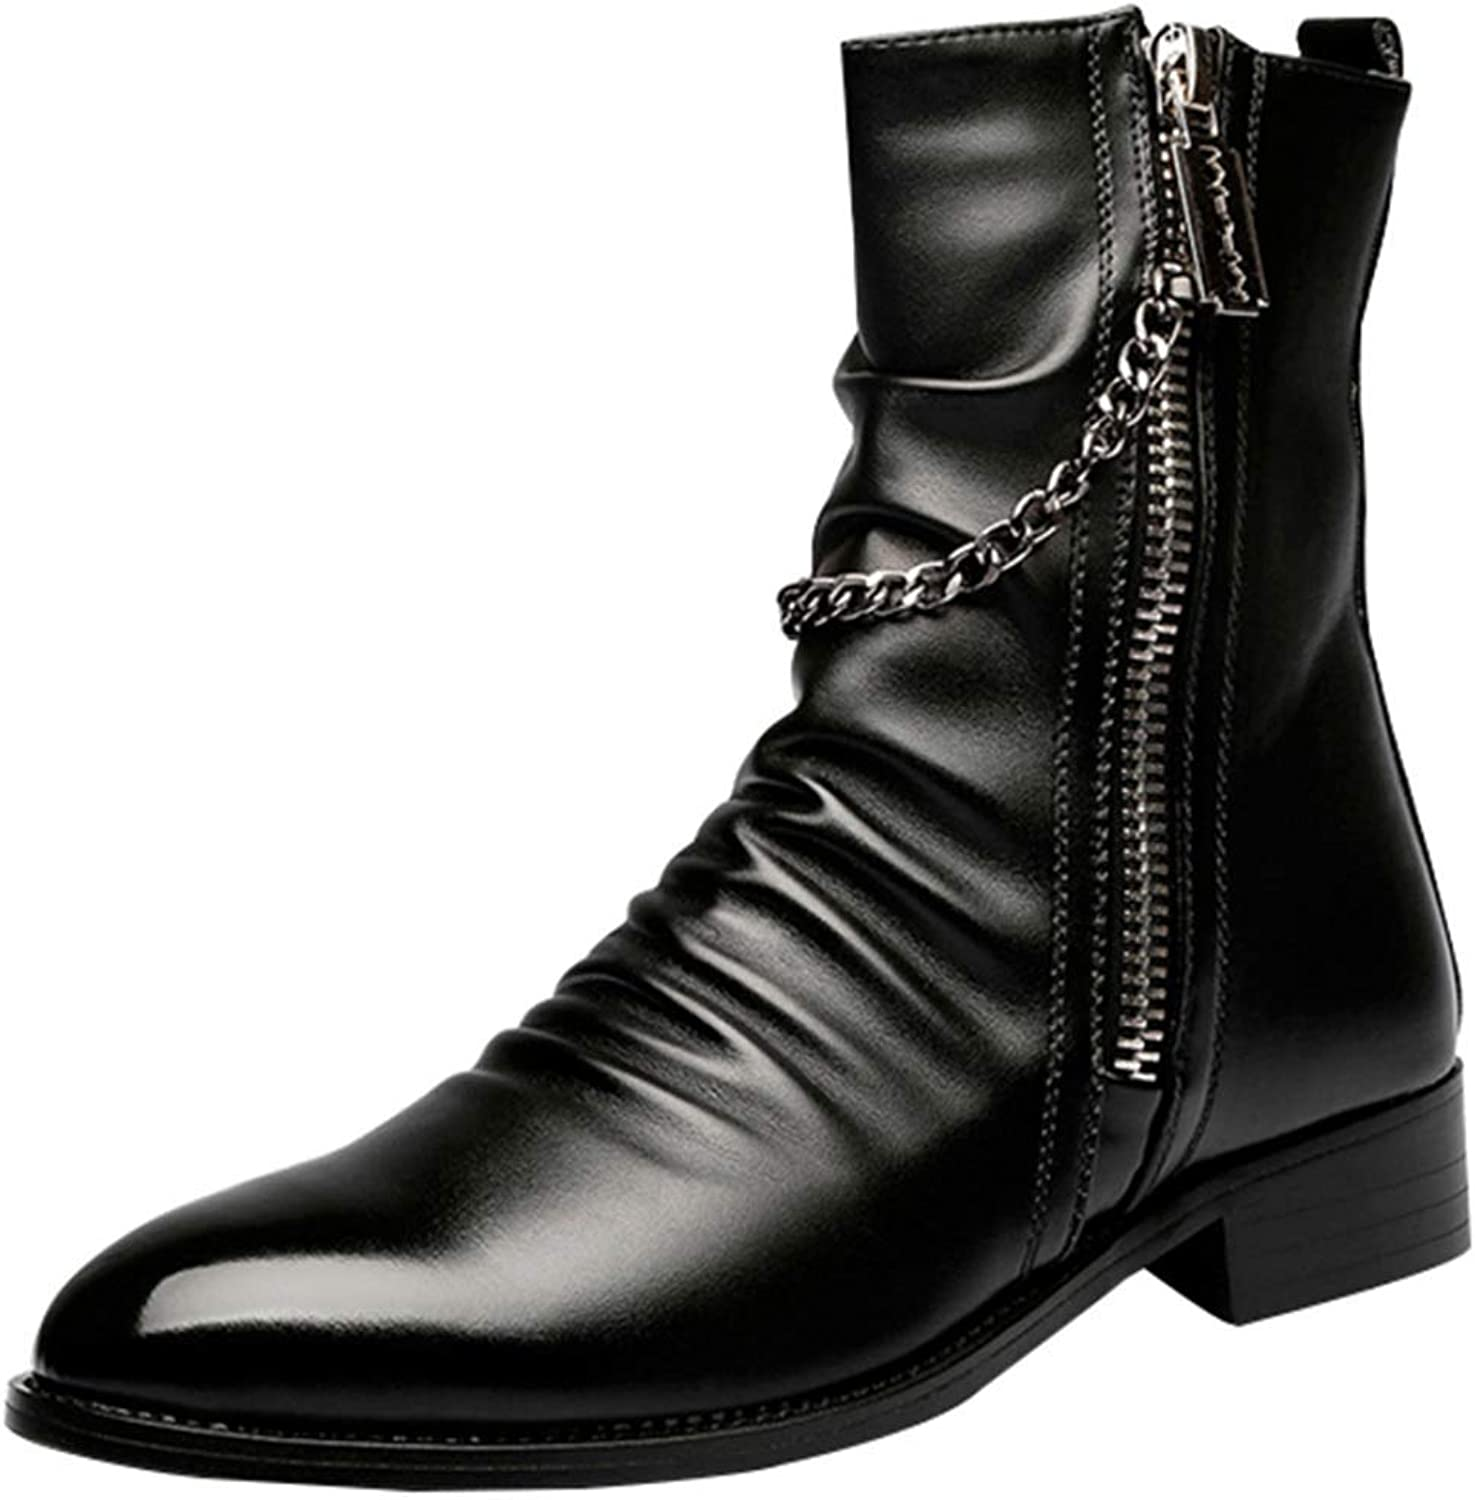 Fuxitoggo Men's Martin Boots Spring And Autumn Winter Fashion Boots (color   2, Size   41EU)